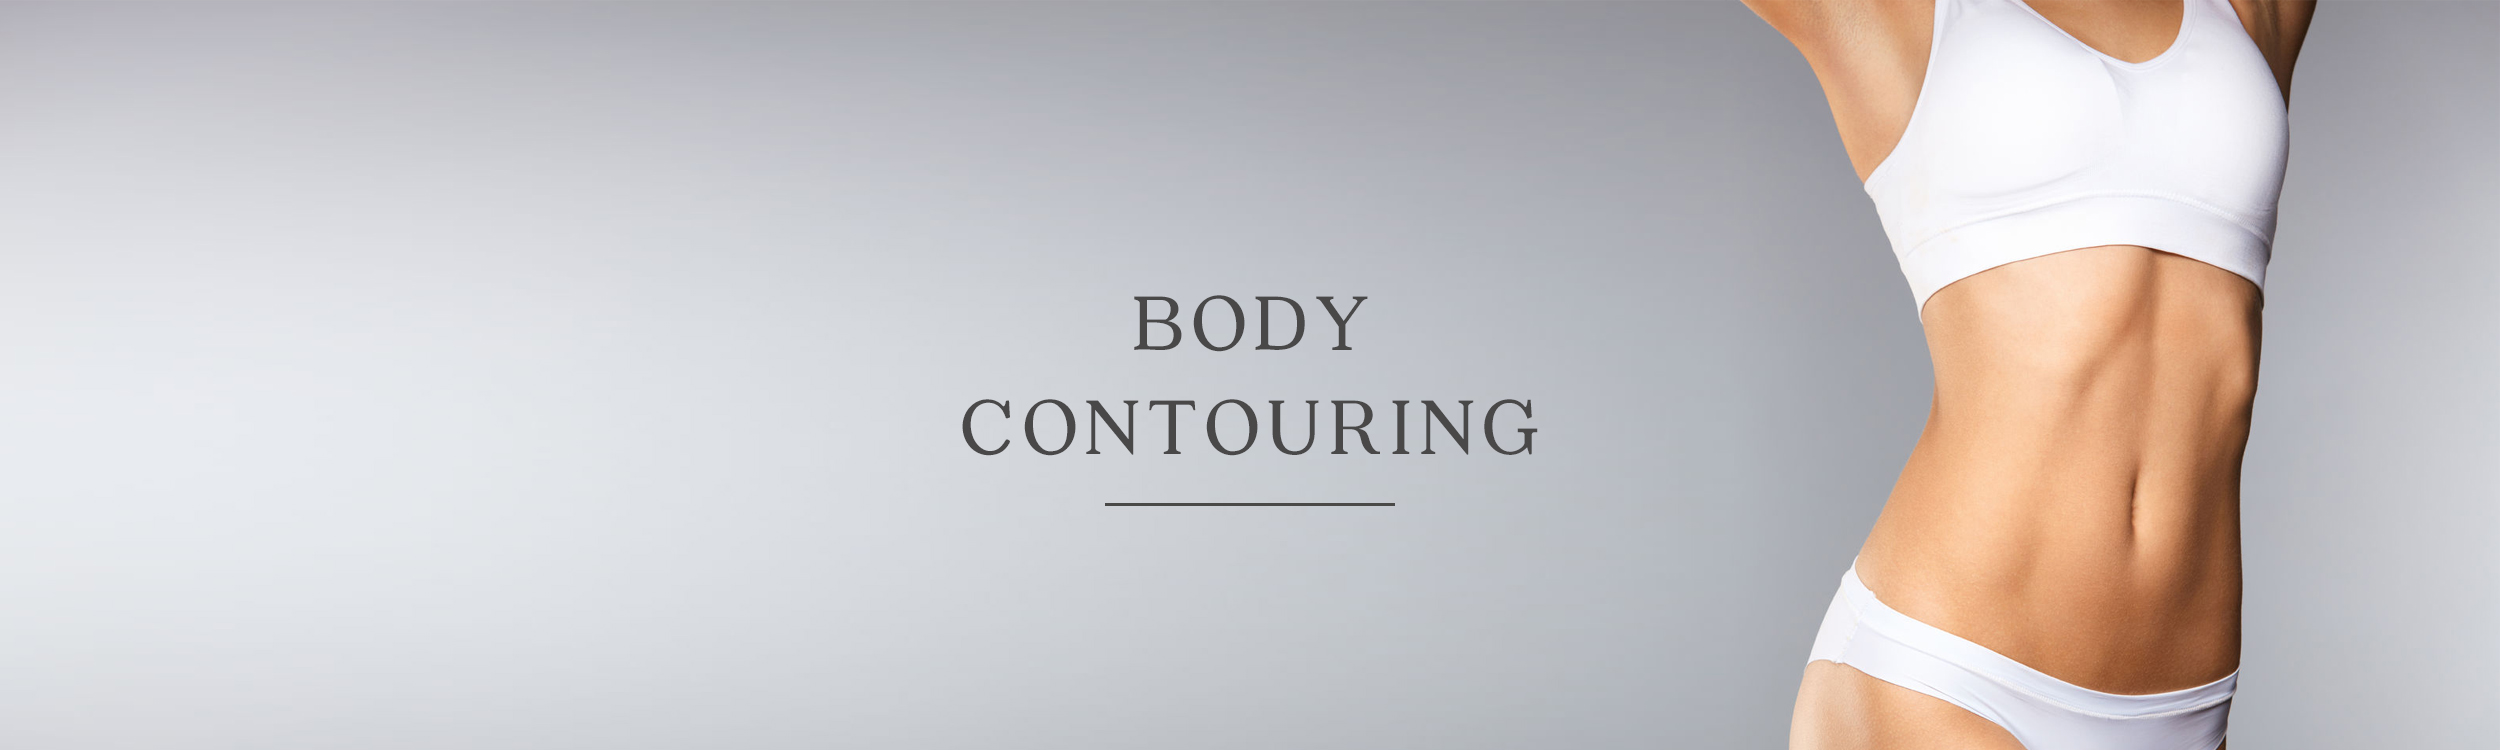 The Clinic for Medical Aesthetics - Body Contouring Banner.jpg